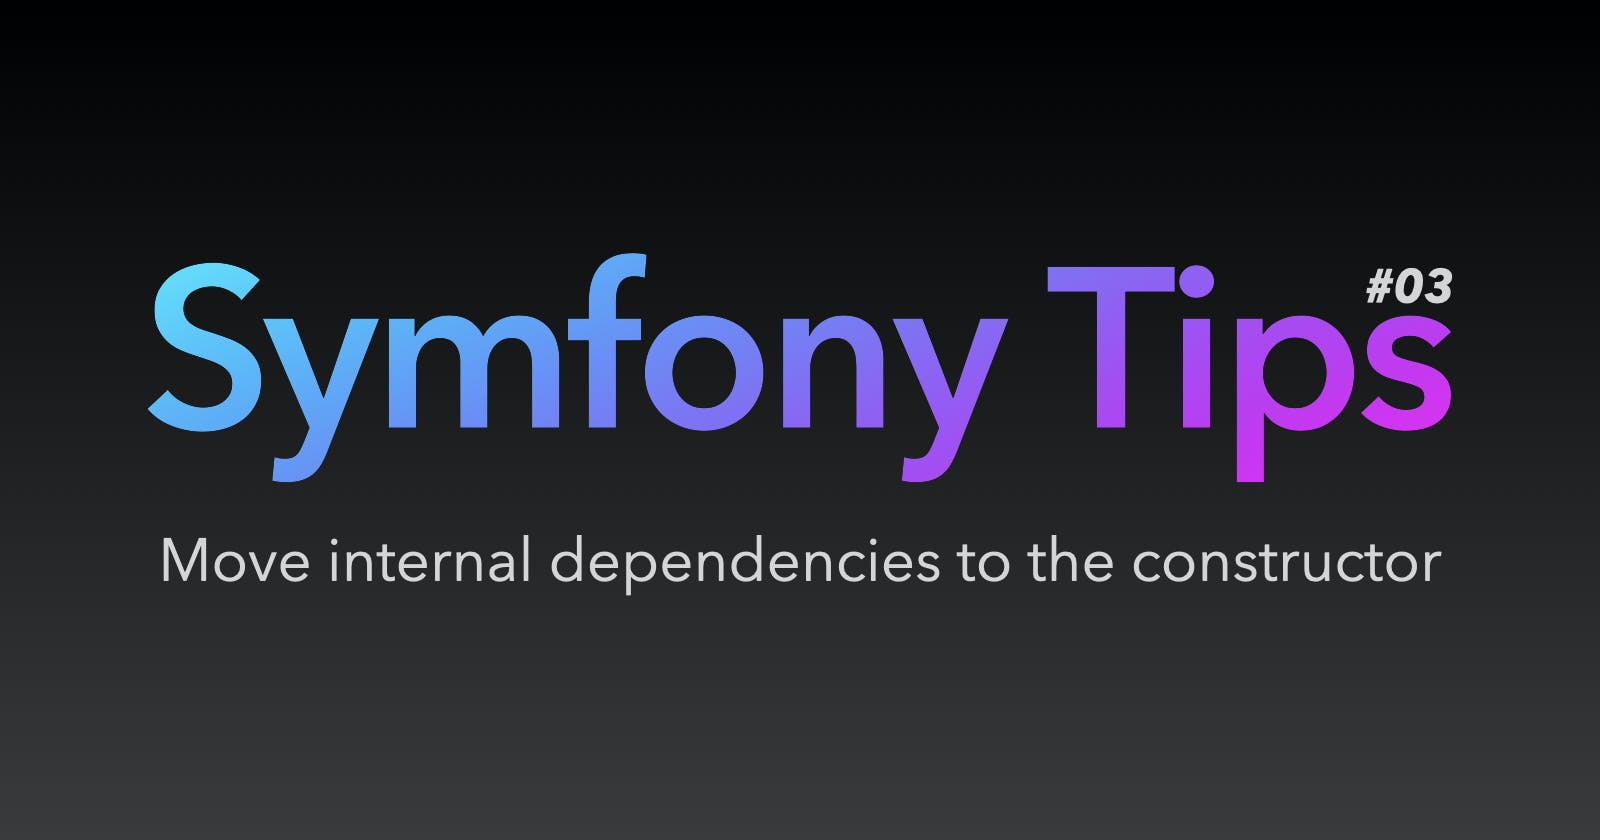 Symfony Tips #03 - Move internal dependencies to the constructor